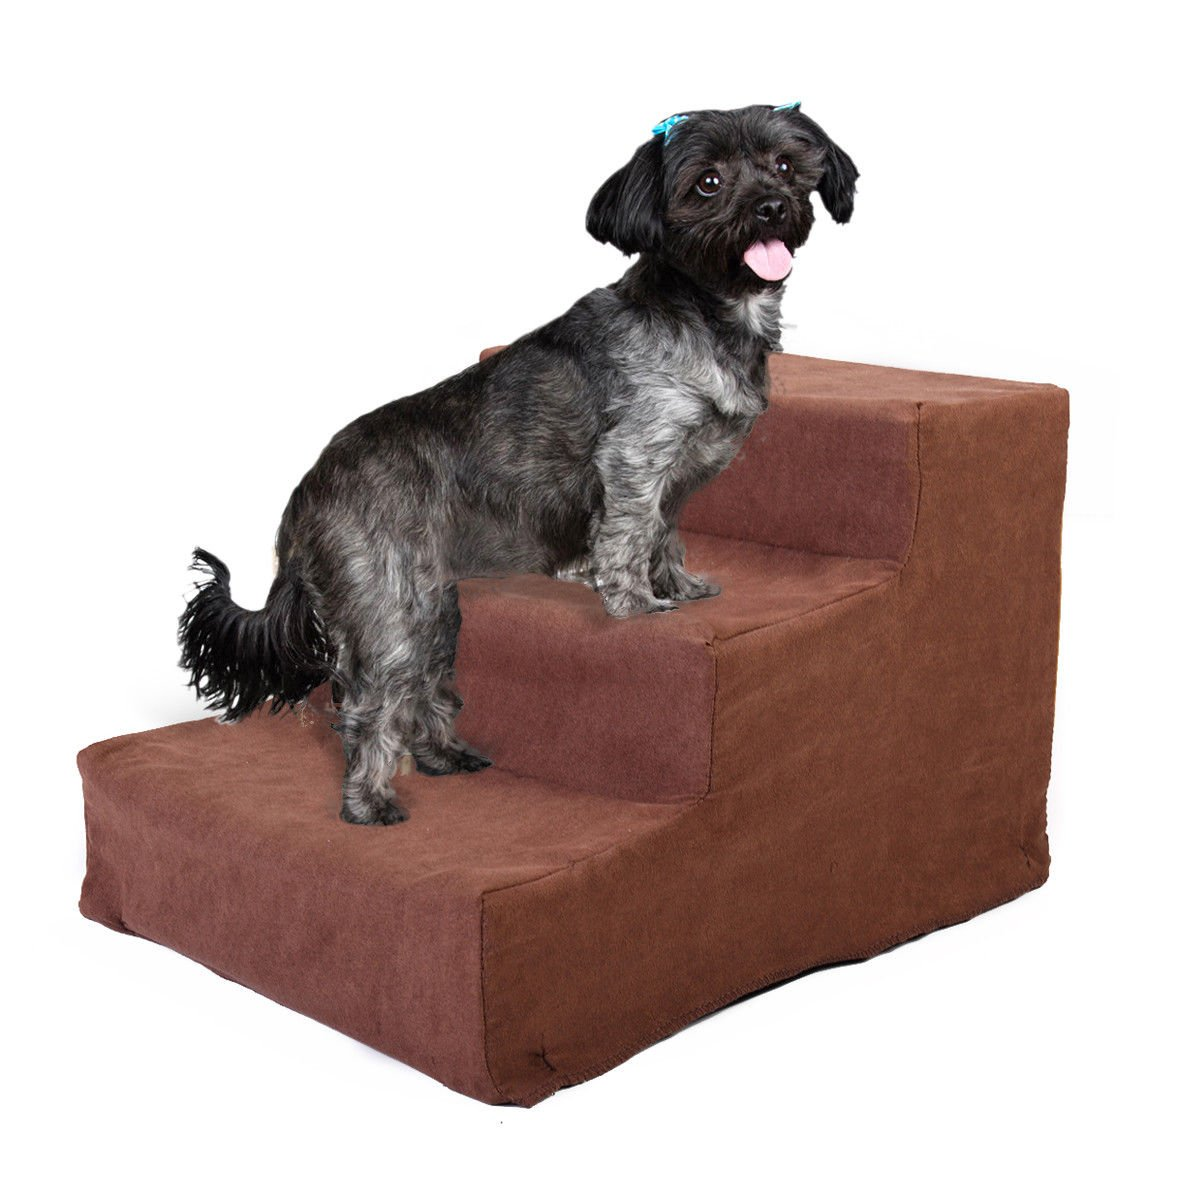 JAXPETY Animals Favorite Pet Stairs, 3 Steps Ramp Ladder for Dogs, Portable, Ladder with Cover Indoor (Coffee)